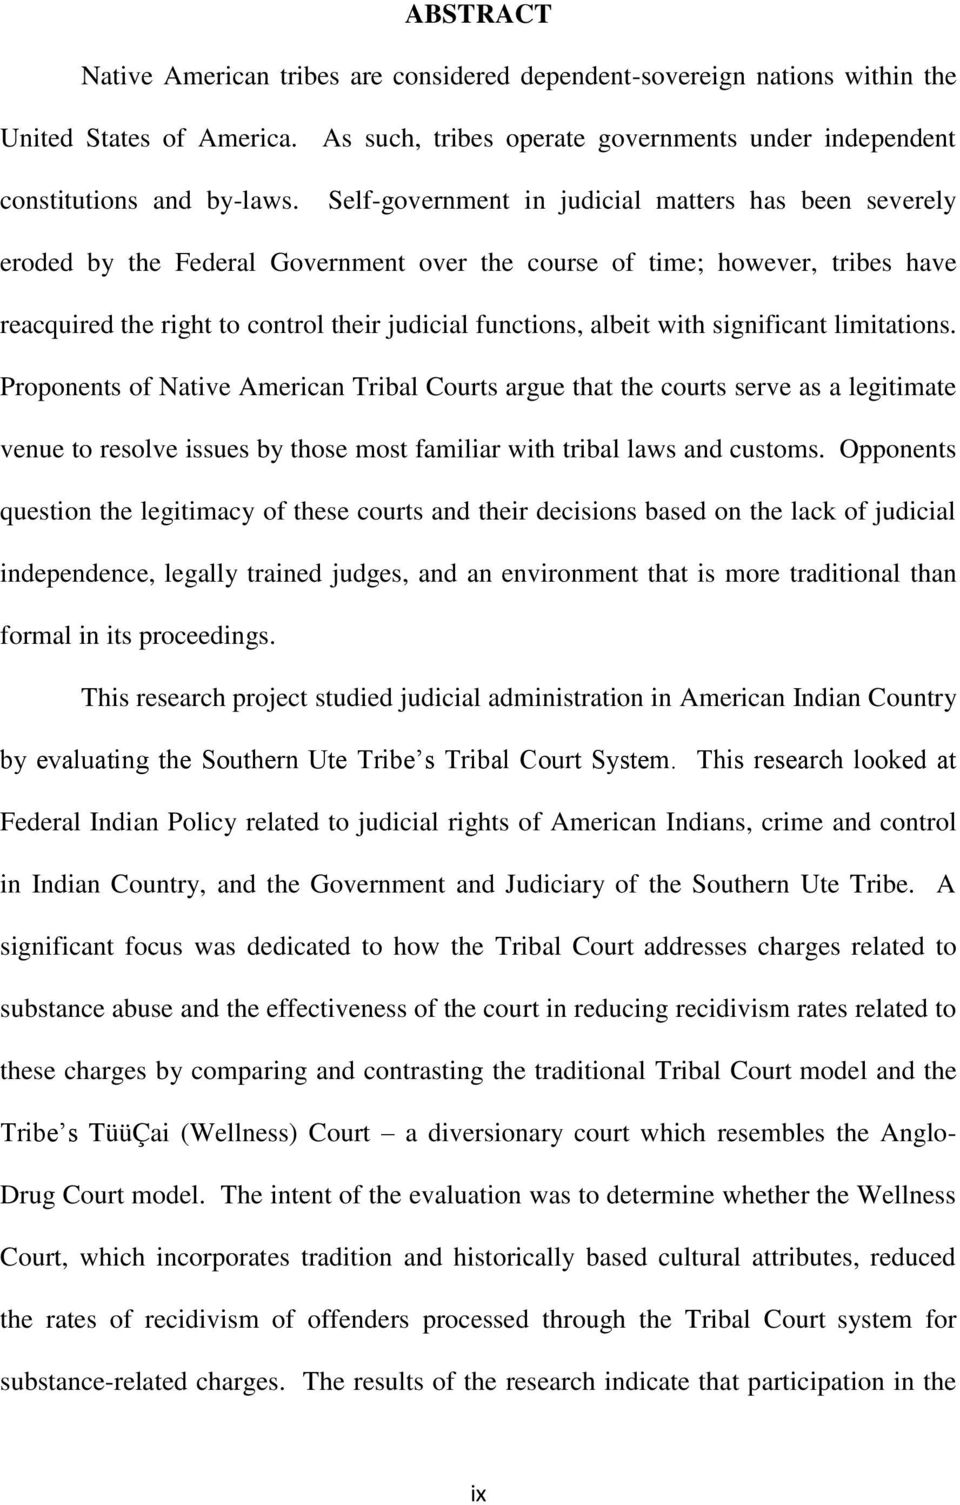 with significant limitations. Proponents of Native American Tribal Courts argue that the courts serve as a legitimate venue to resolve issues by those most familiar with tribal laws and customs.